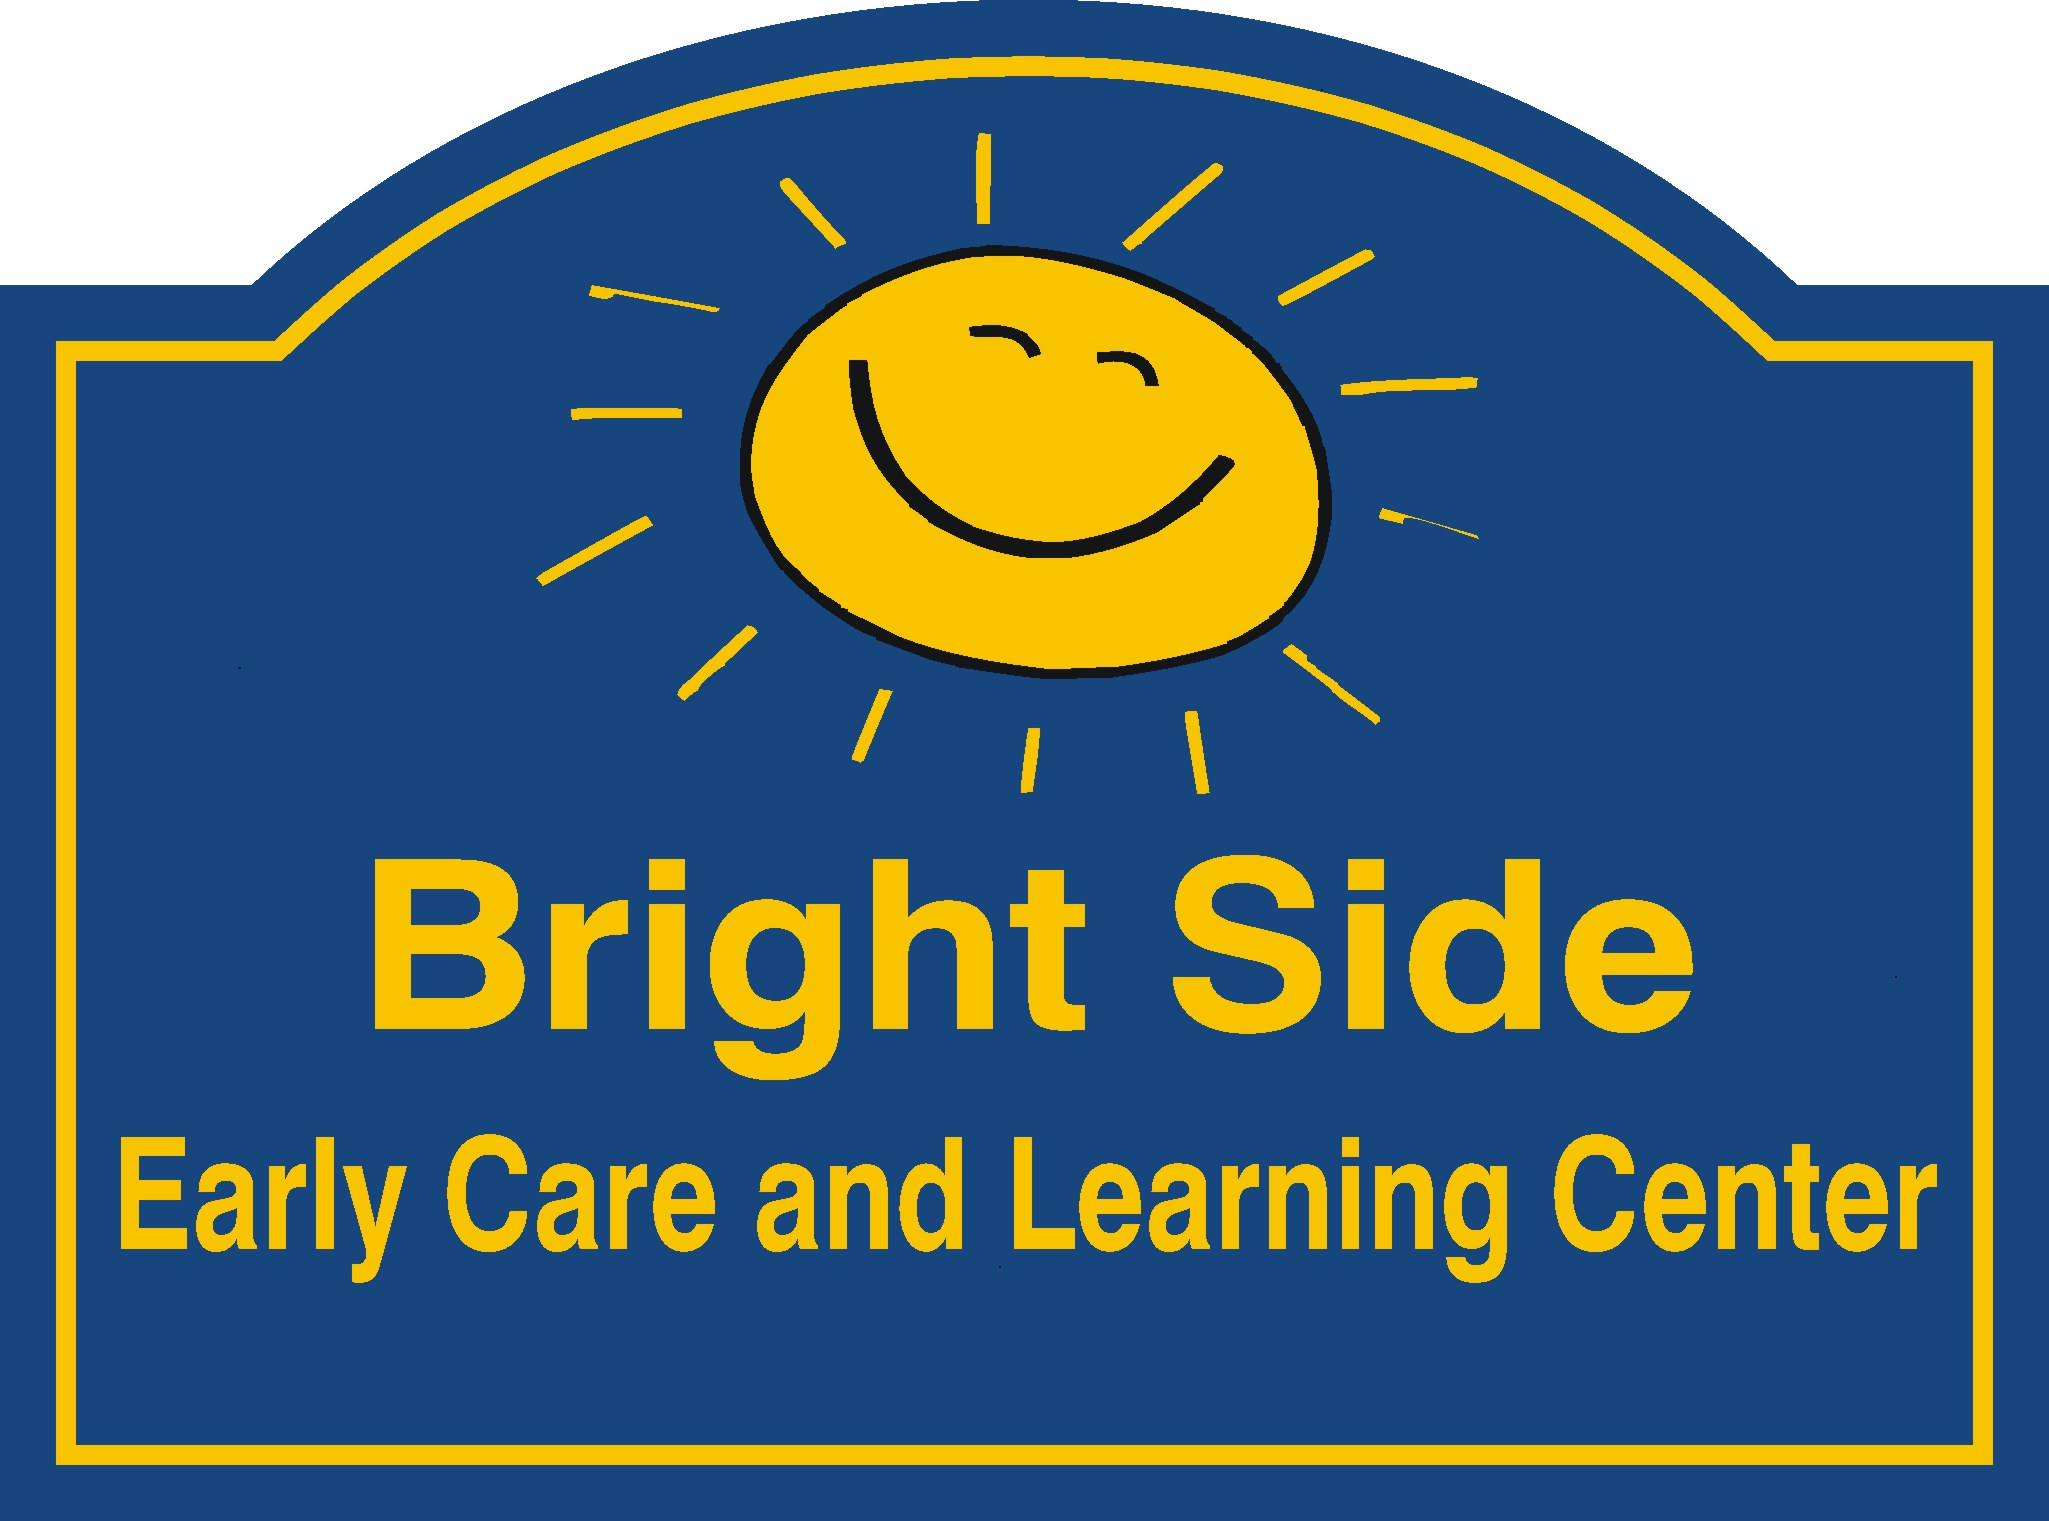 Bright Side Early Care and Learning Center